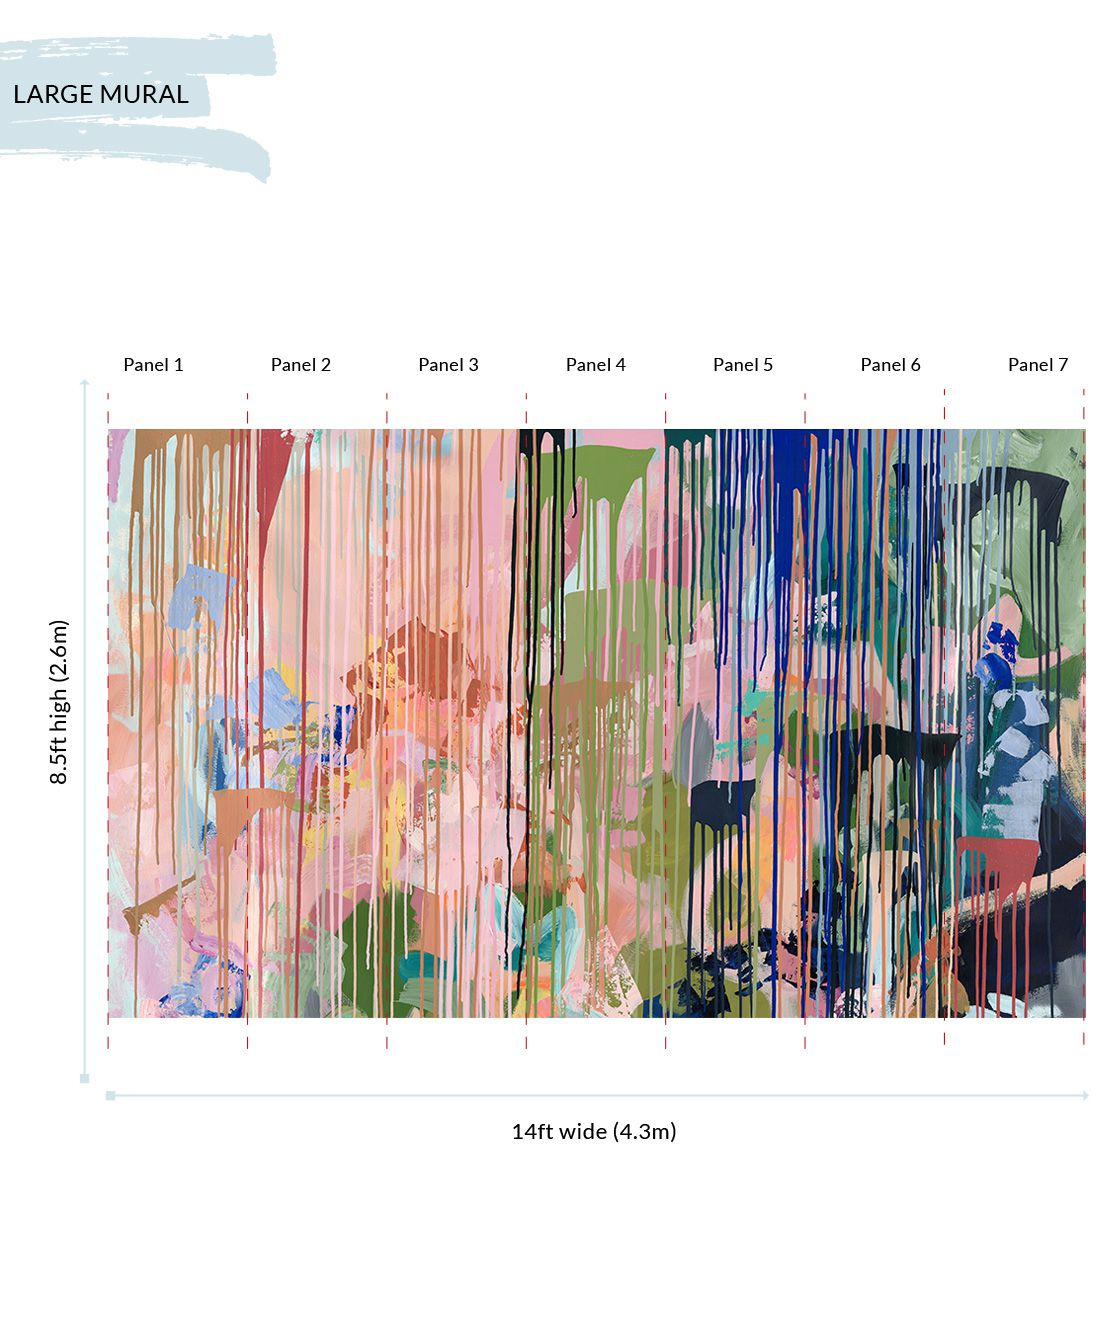 Path Less Travelled Wallpaper Mural •Colorful Painterly Wallpaper • Tiff Manuell • Abstract Expressionist Wallpaper • Large Mural